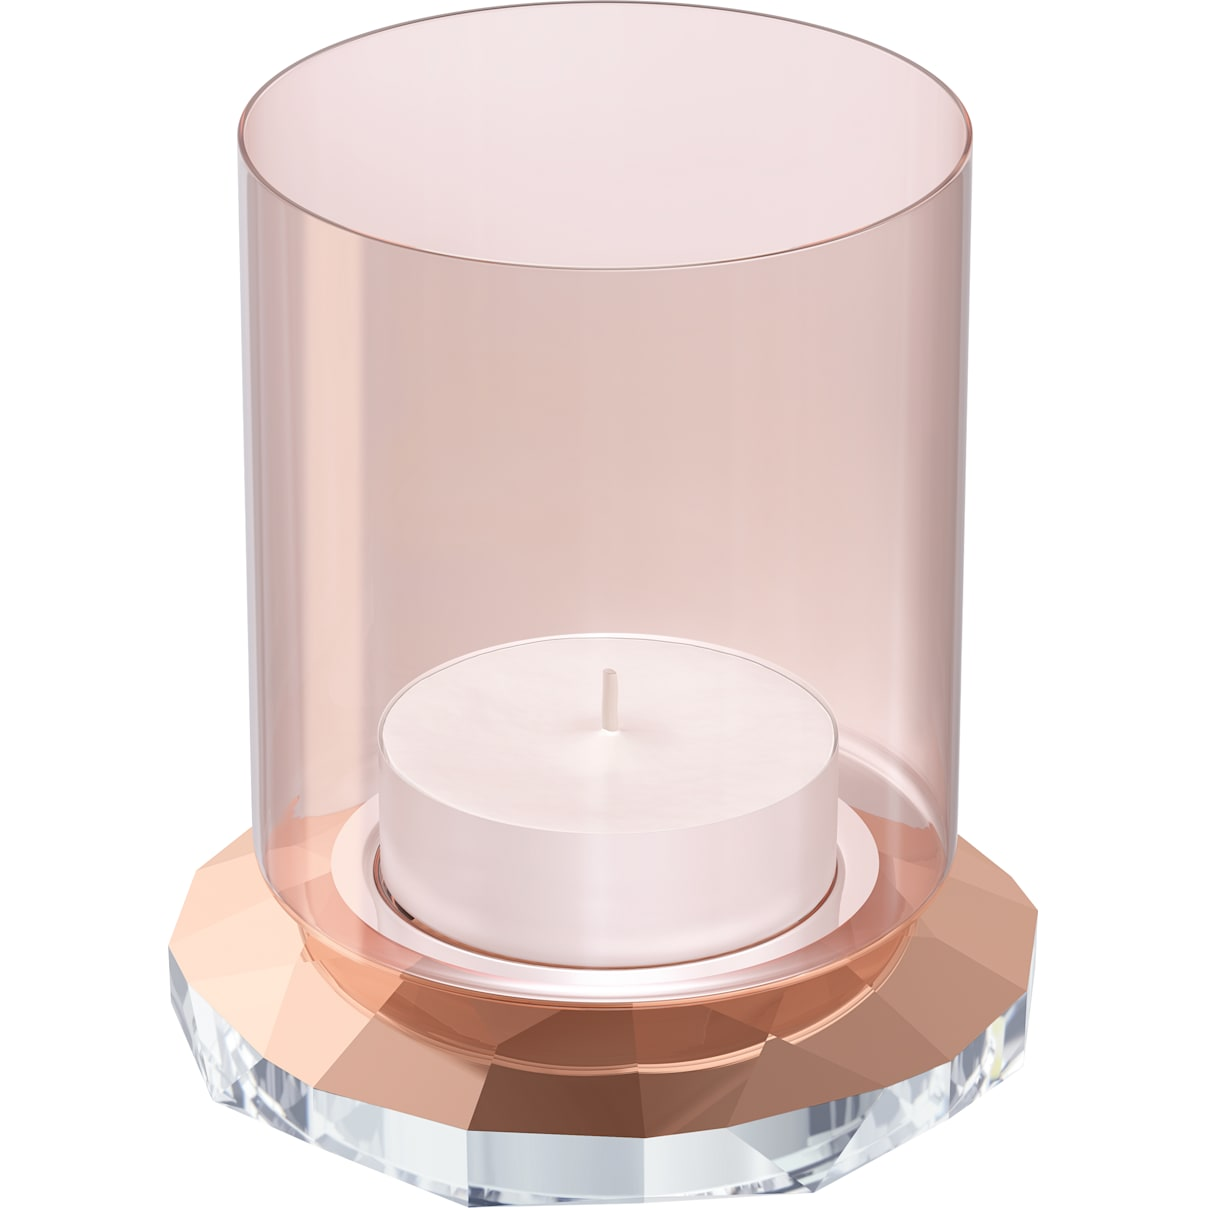 Swarovski Allure Tea Light, Rose Gold Tone